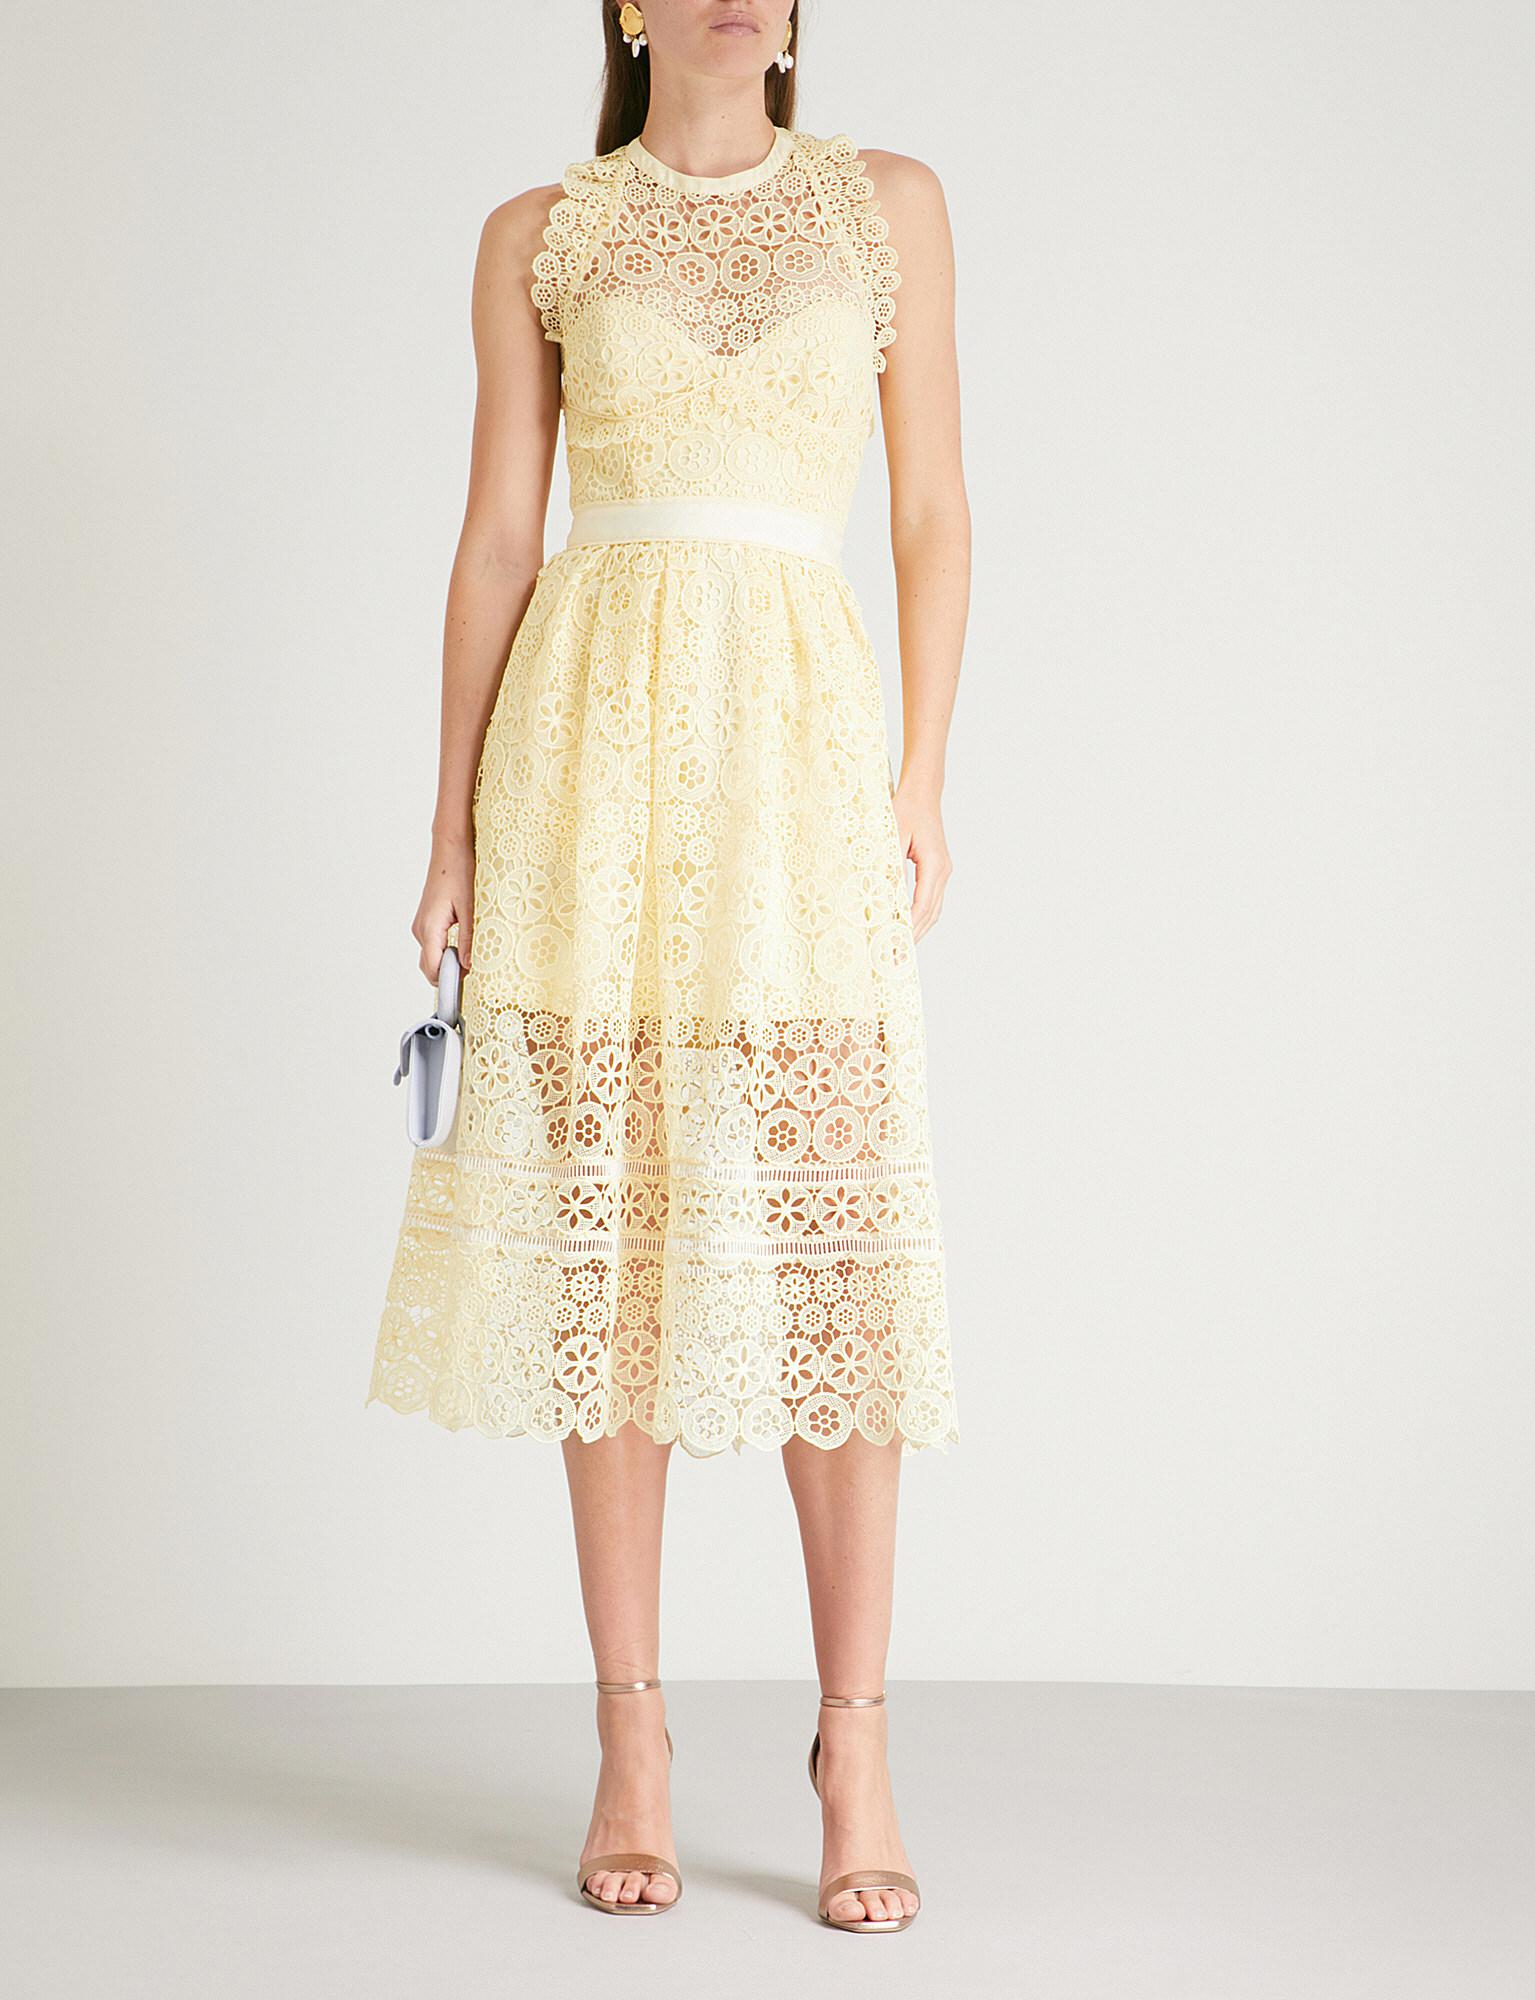 bc37deb3adc603 Self-Portrait Circle Floral Lace Midi Dress in Yellow - Lyst